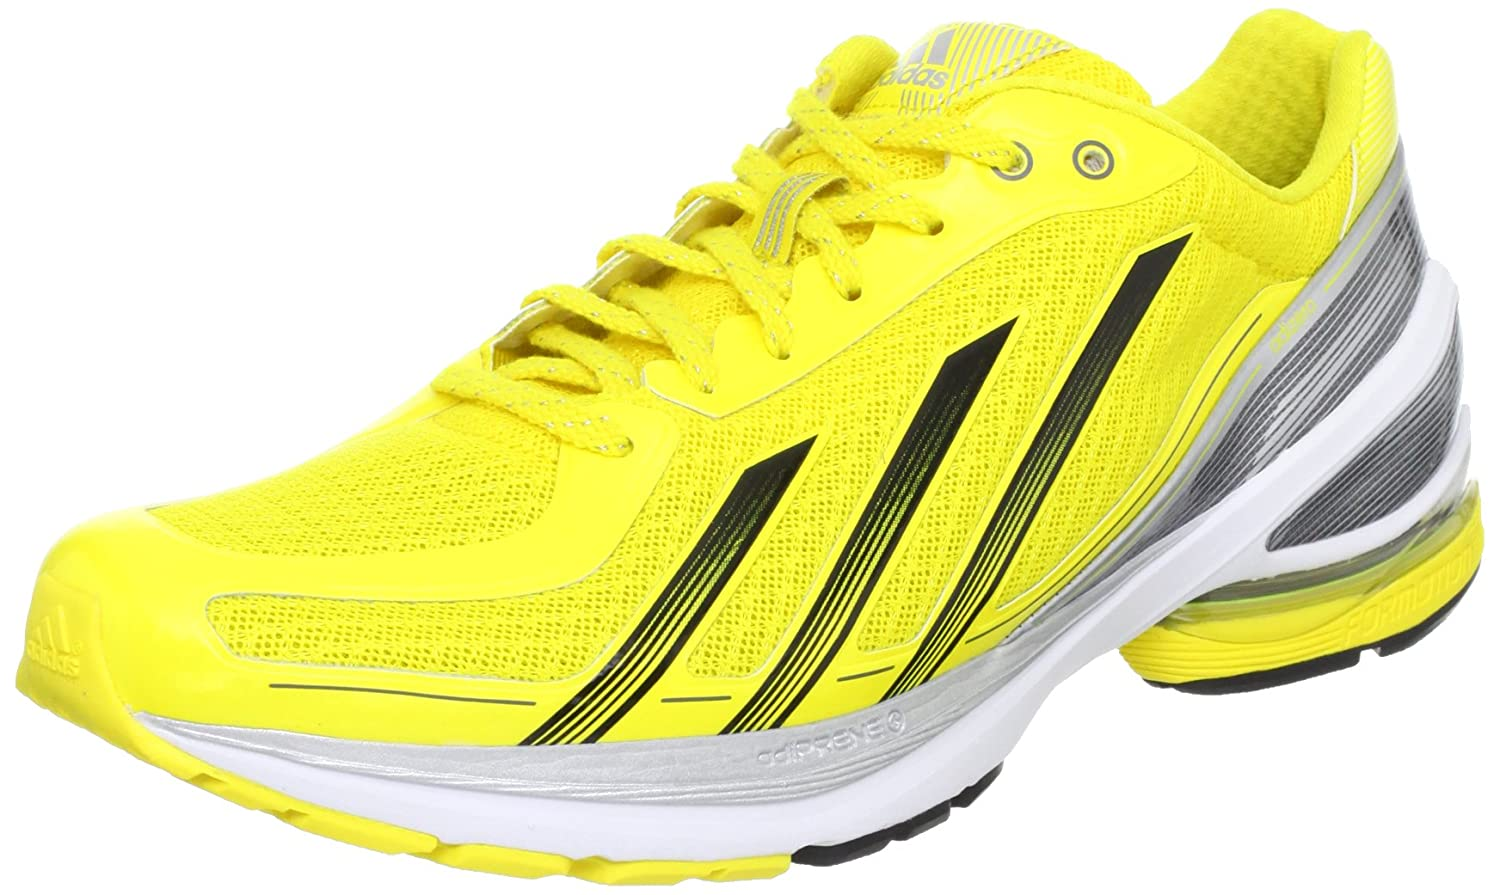 adidas adizero f50 running shoes